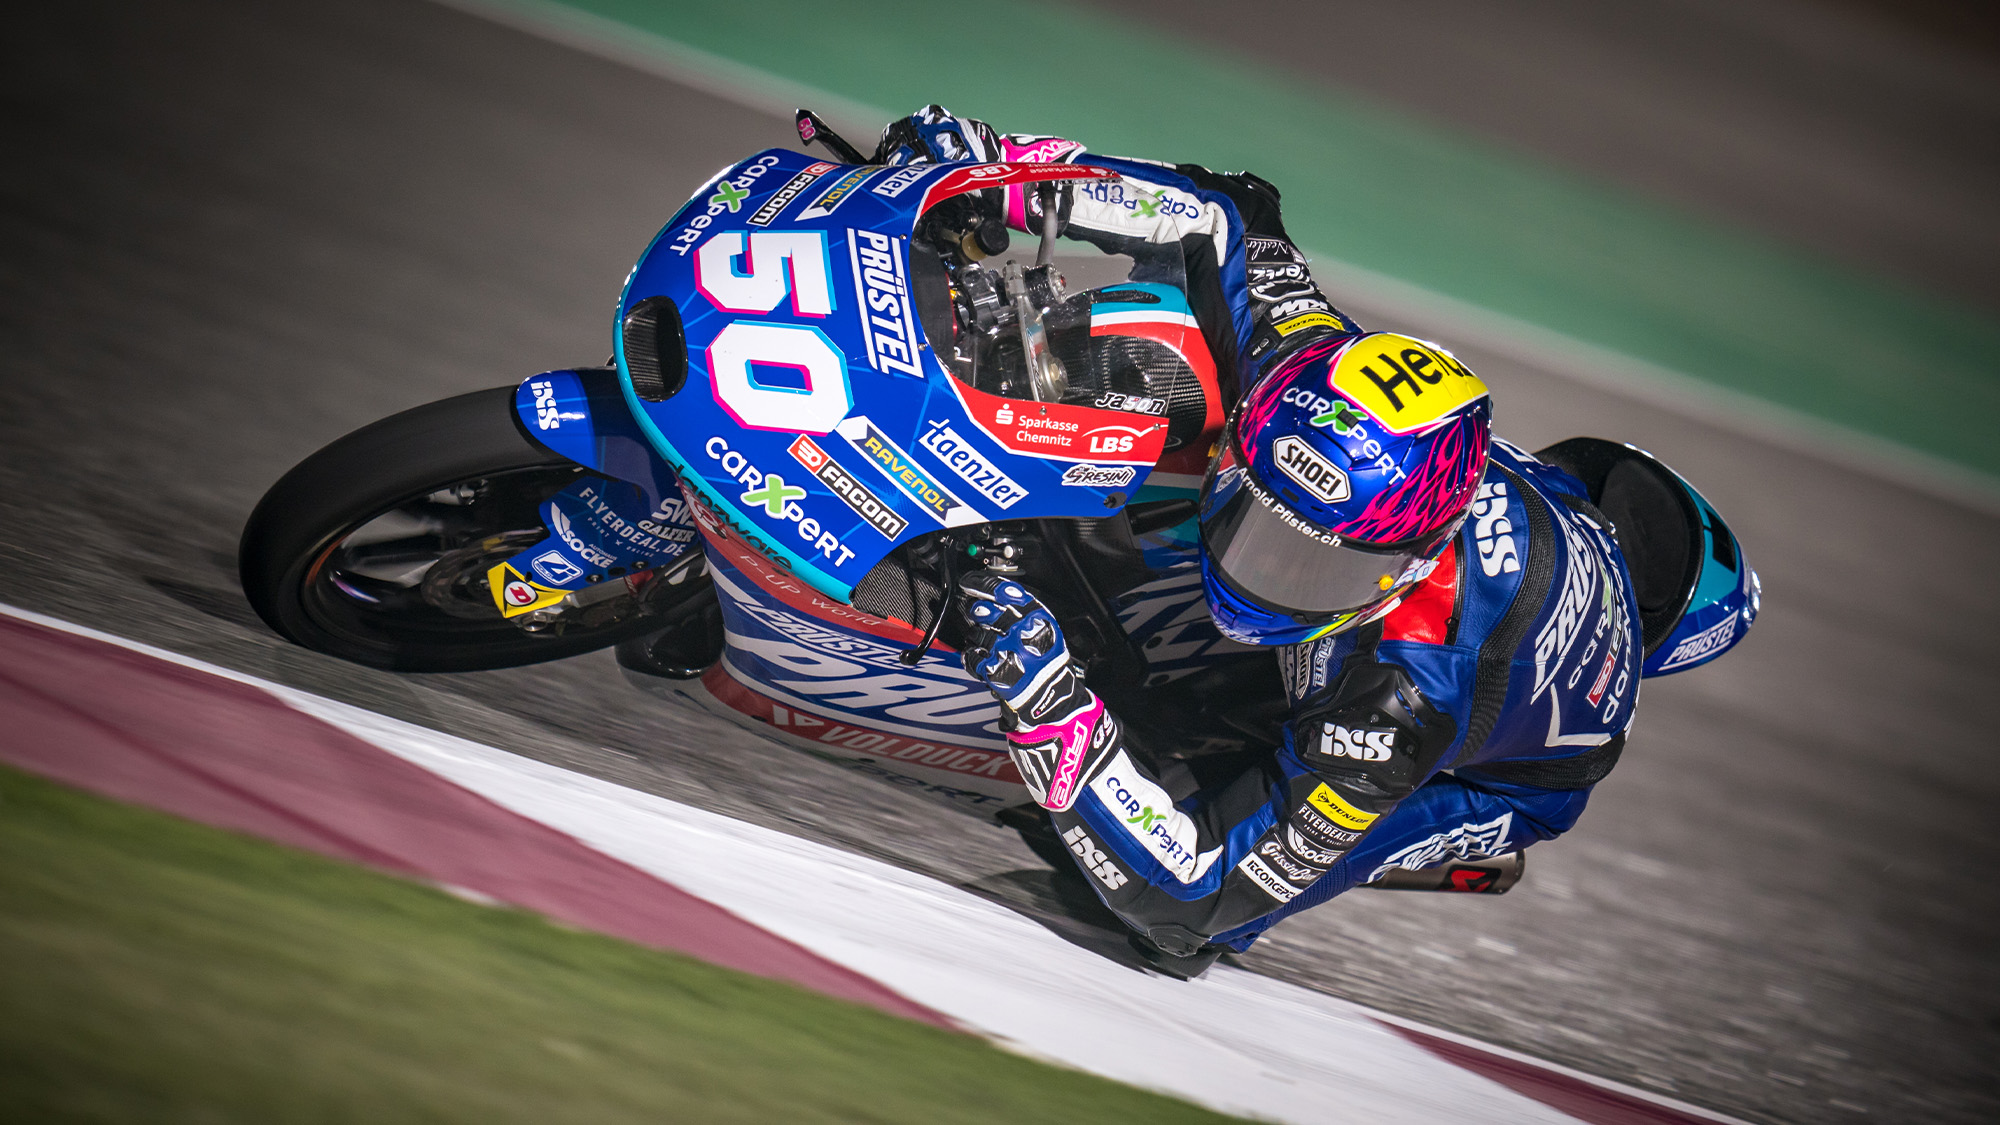 MotoGP: the closer the racing, the more dangerous it becomes